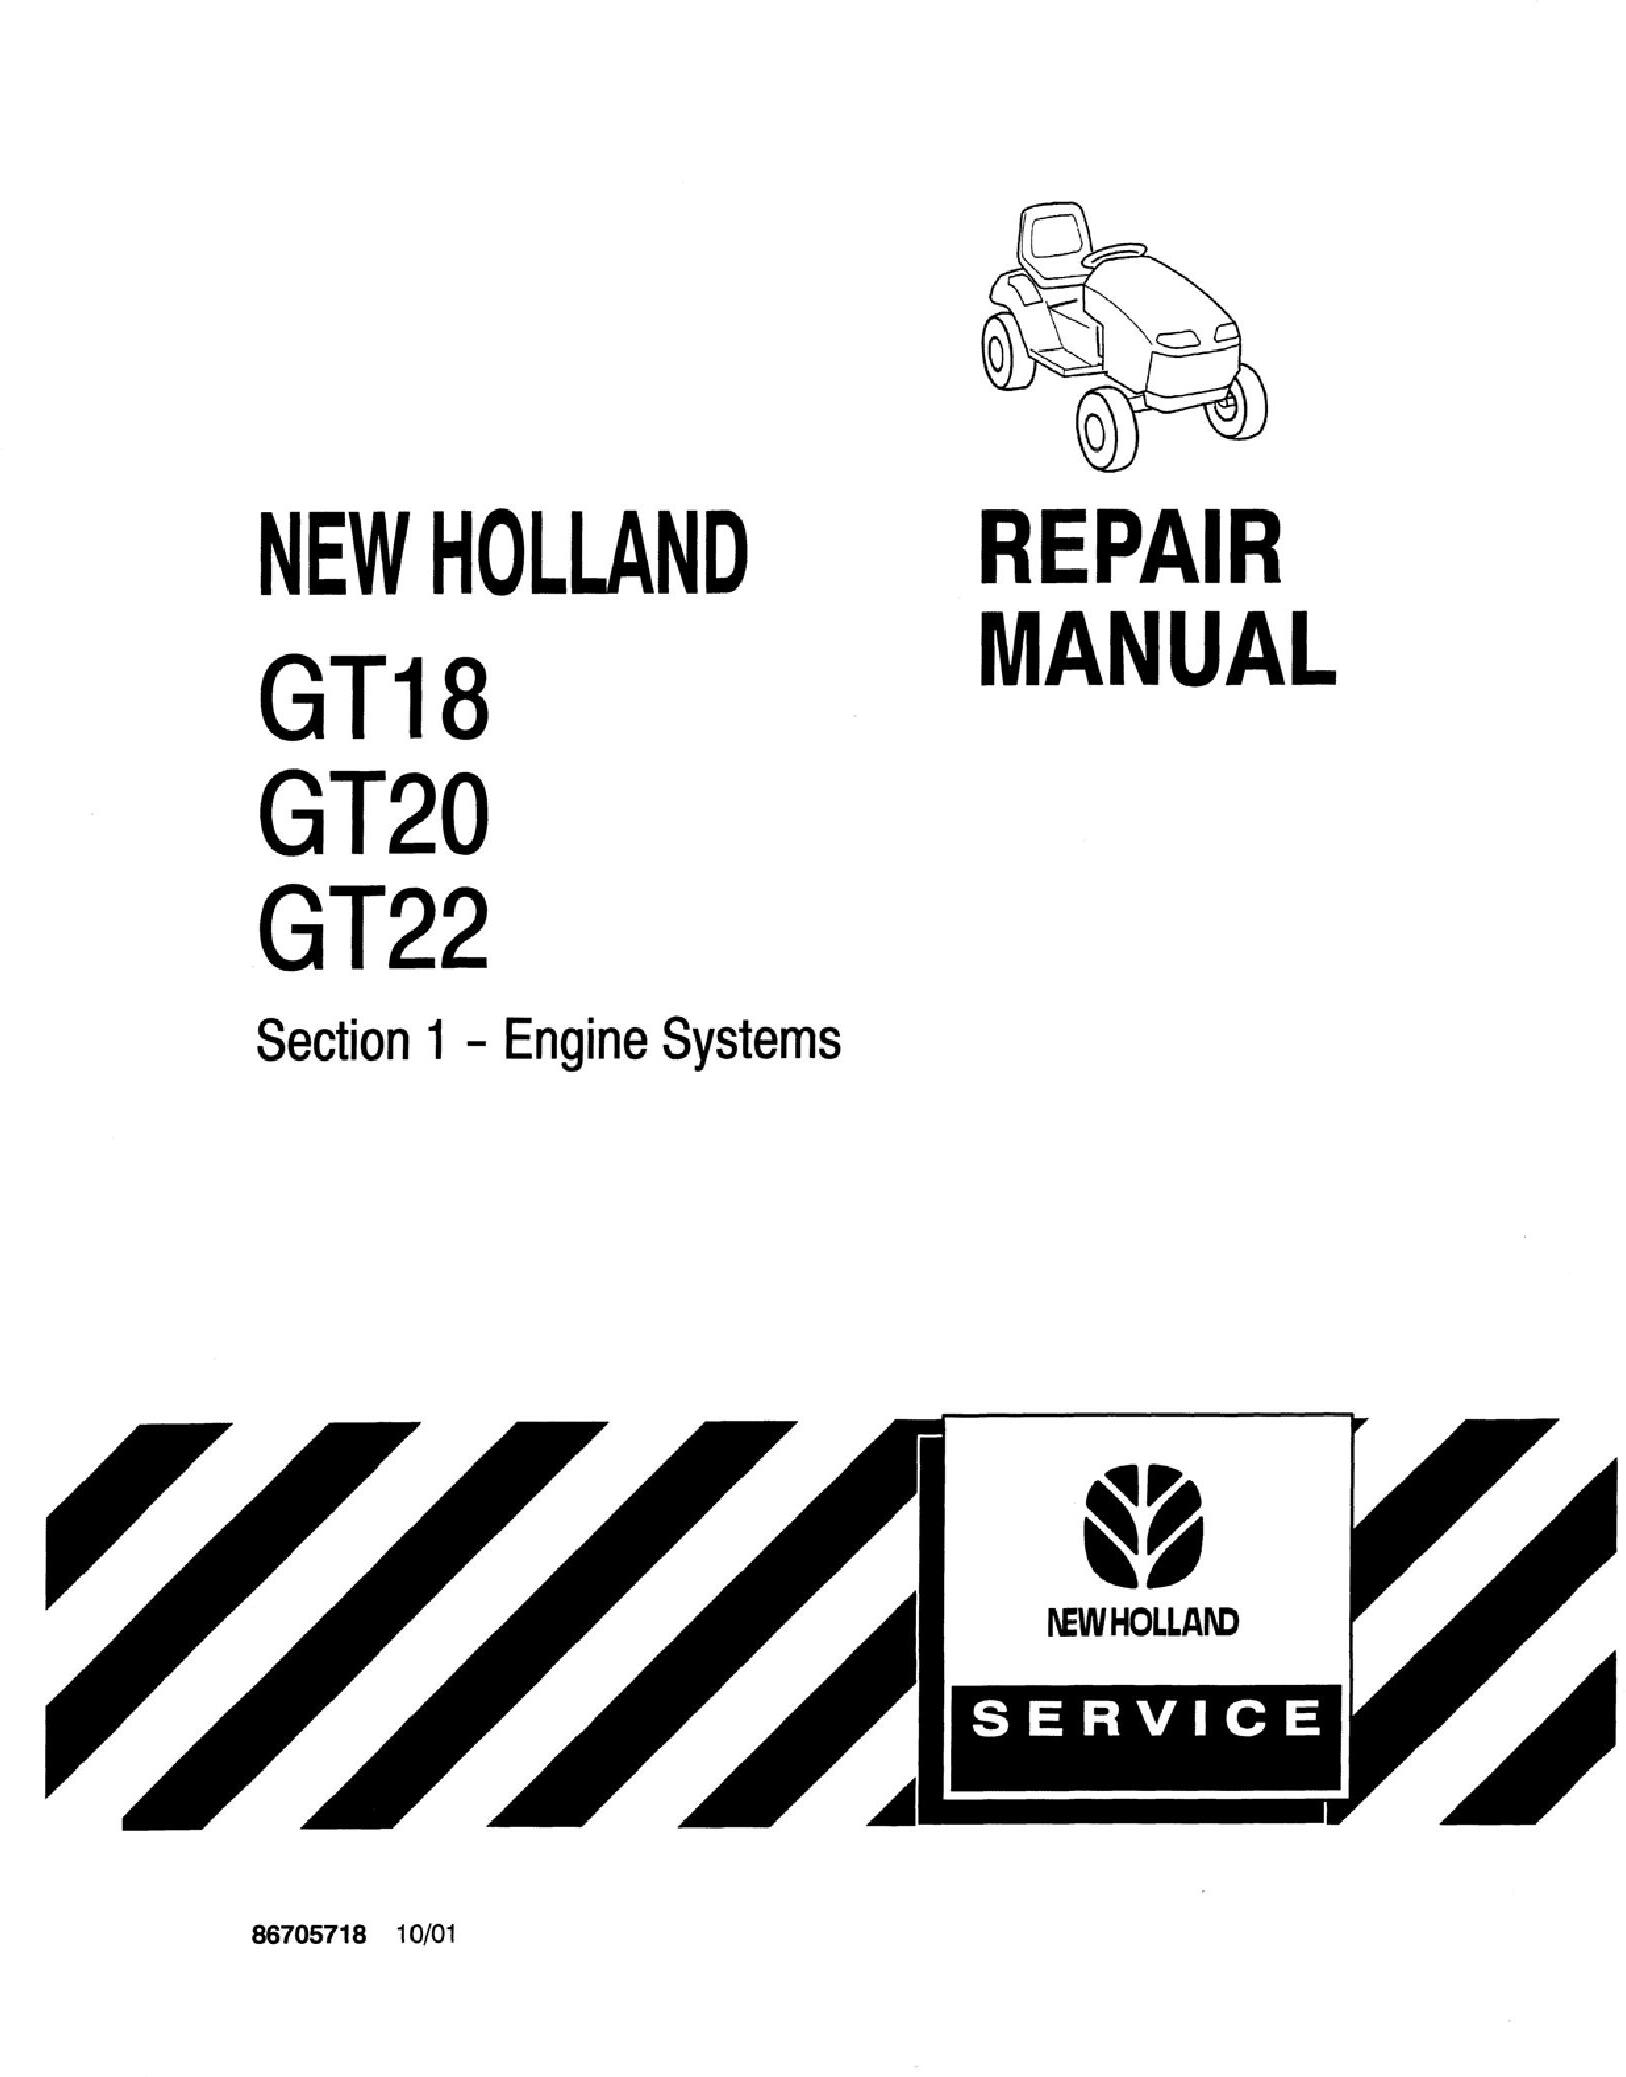 New Holland GT18, GT20, GT22 Garden Tractor COMPLETE Service Manual - 19591